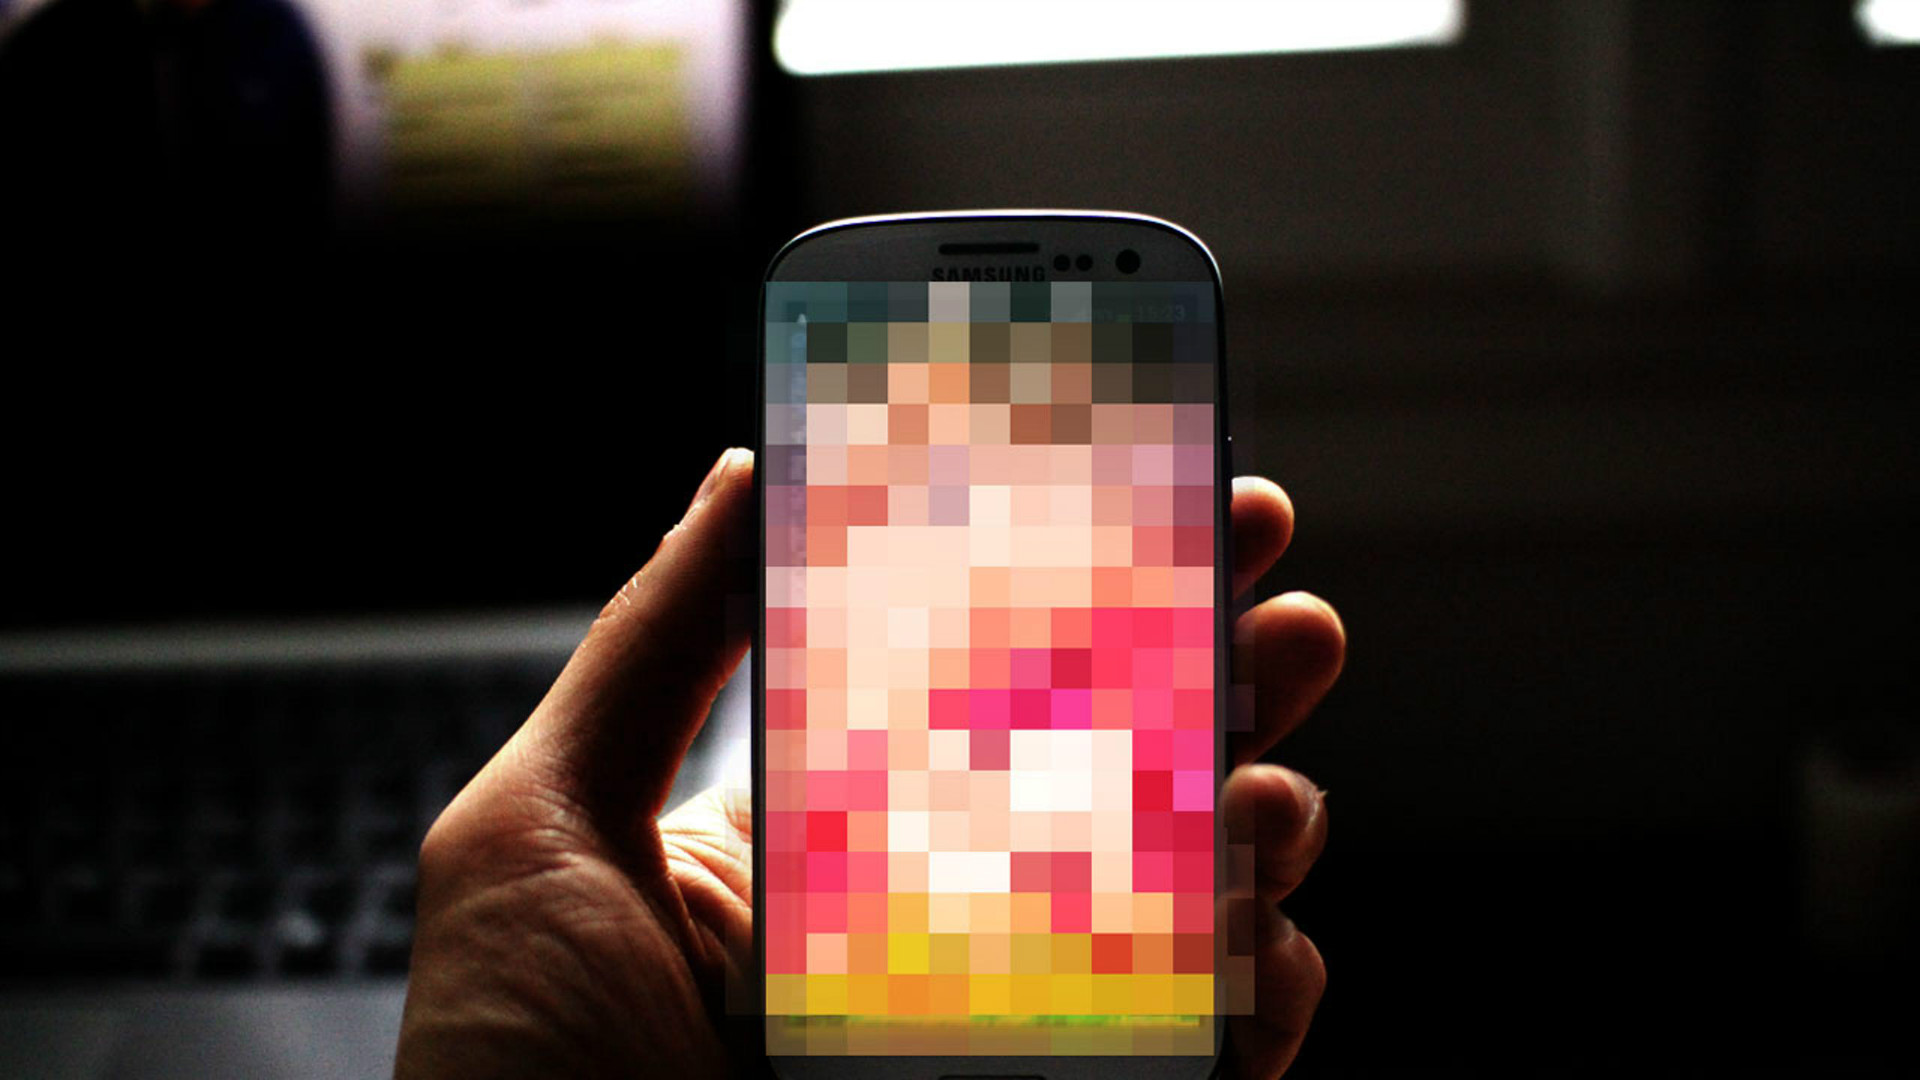 A pixellated smartphone